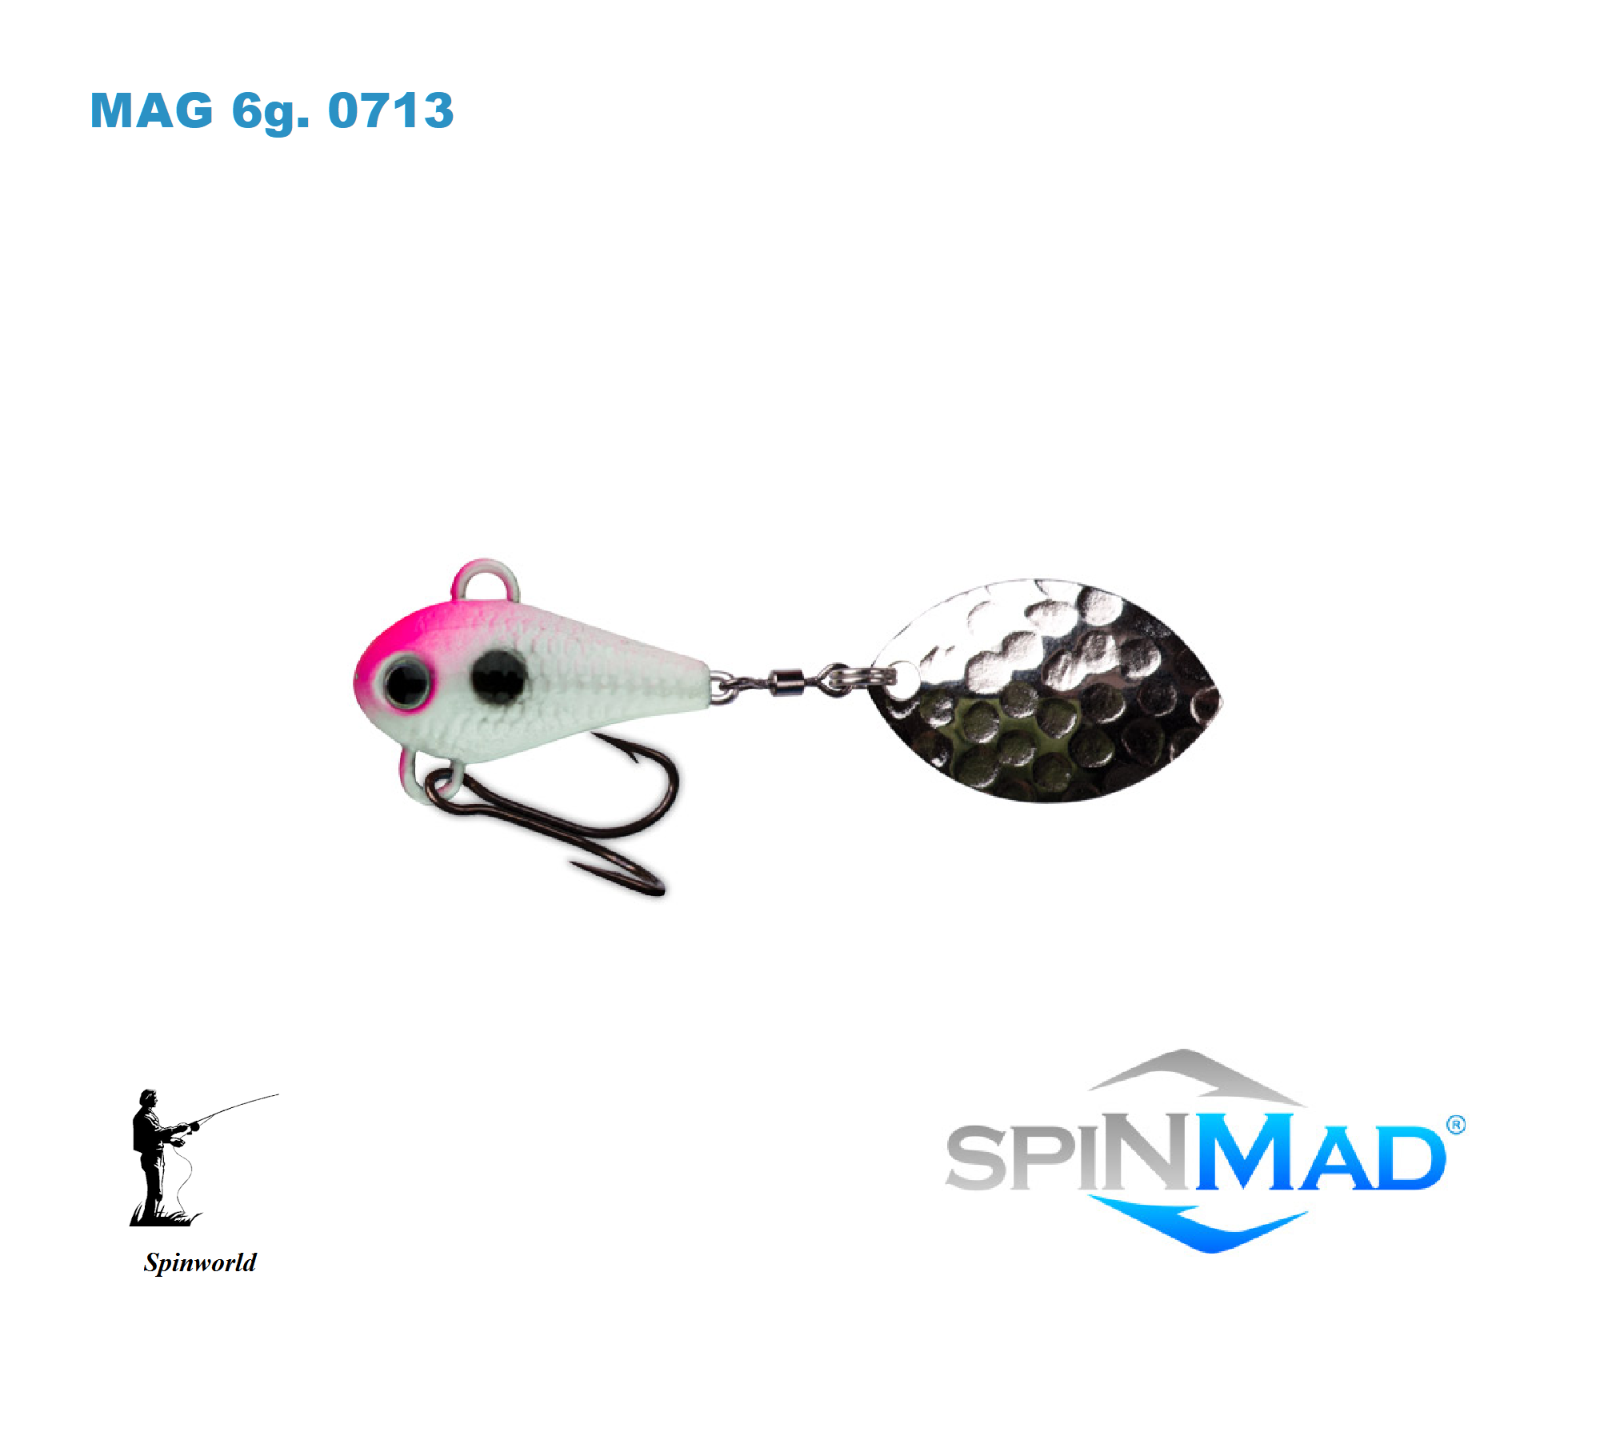 Spinmad Tail spinners MAG 6 G. 20 20 20 mm. Excellent pour la perche, chub, truite 5fda10